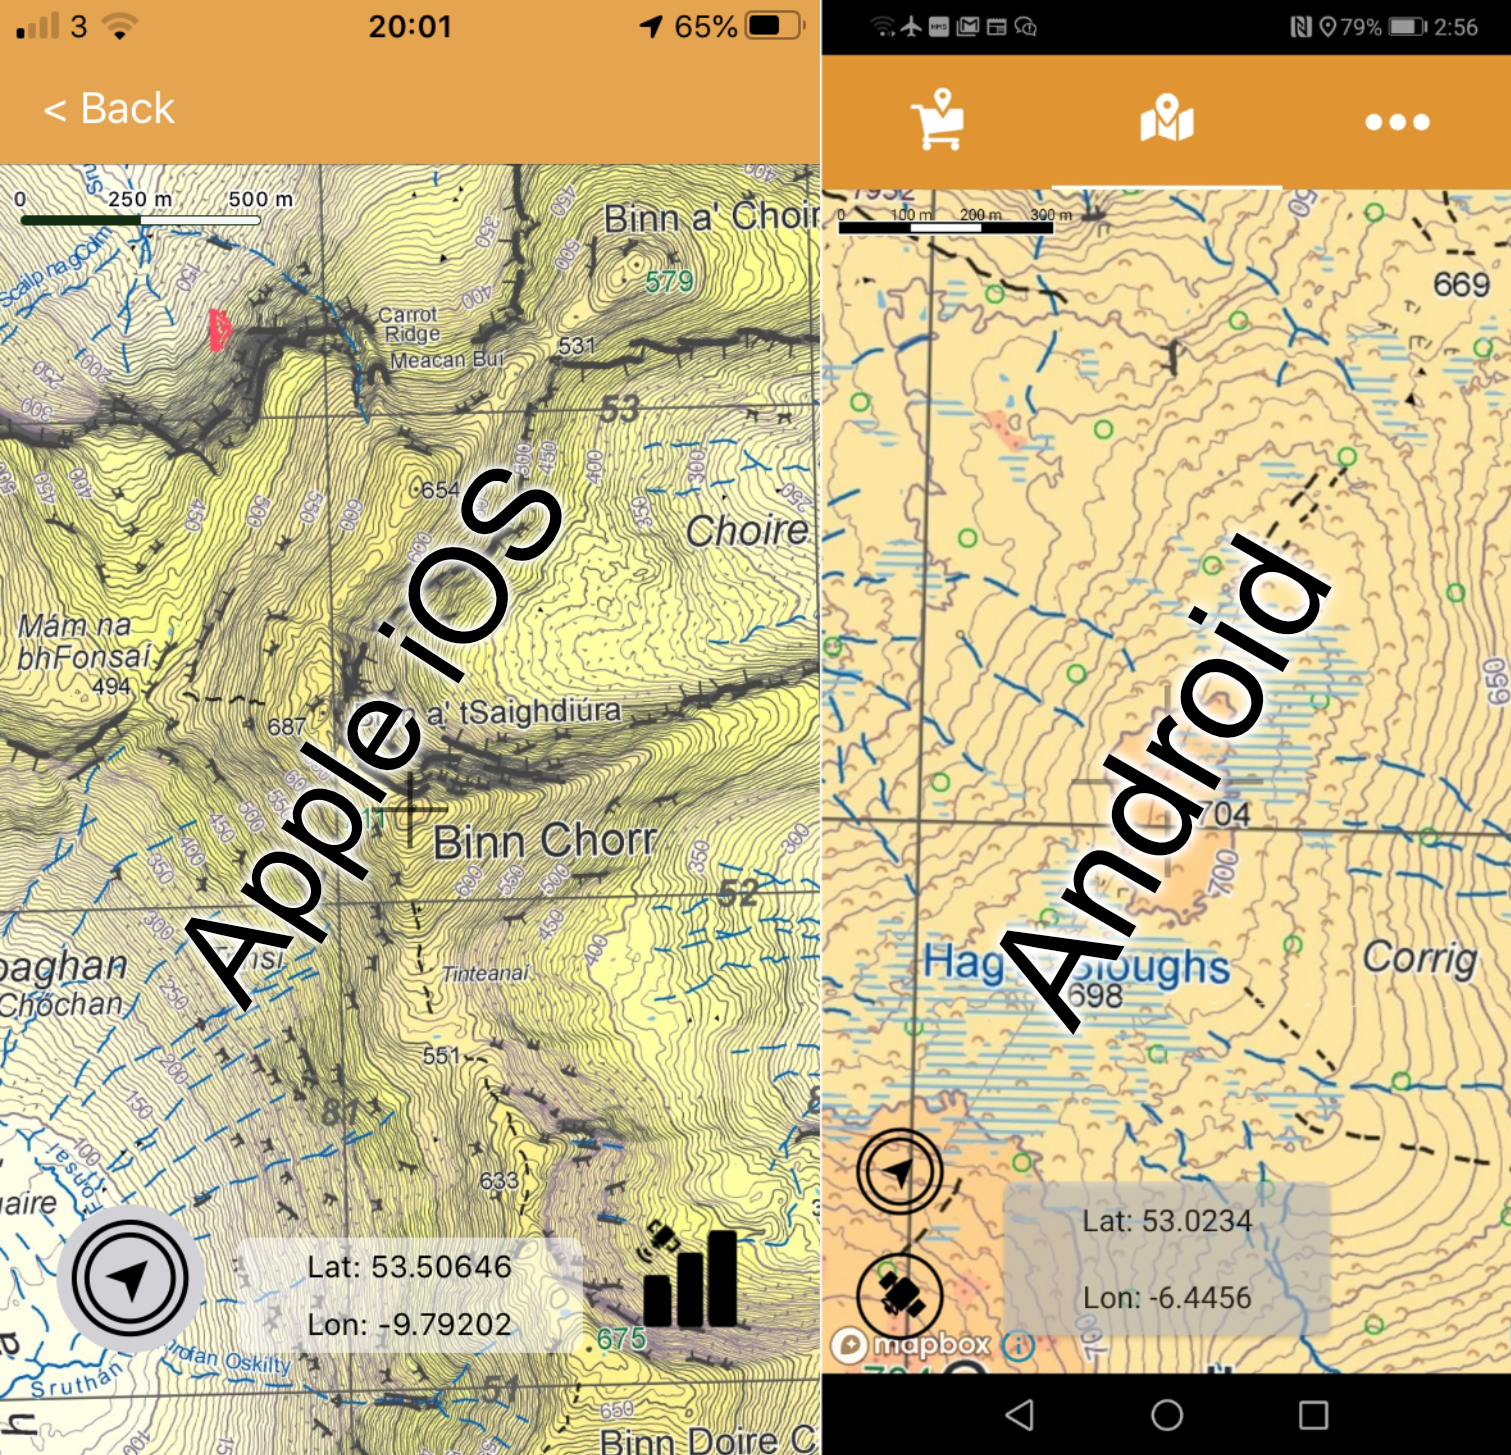 EastWest Maps Android Update